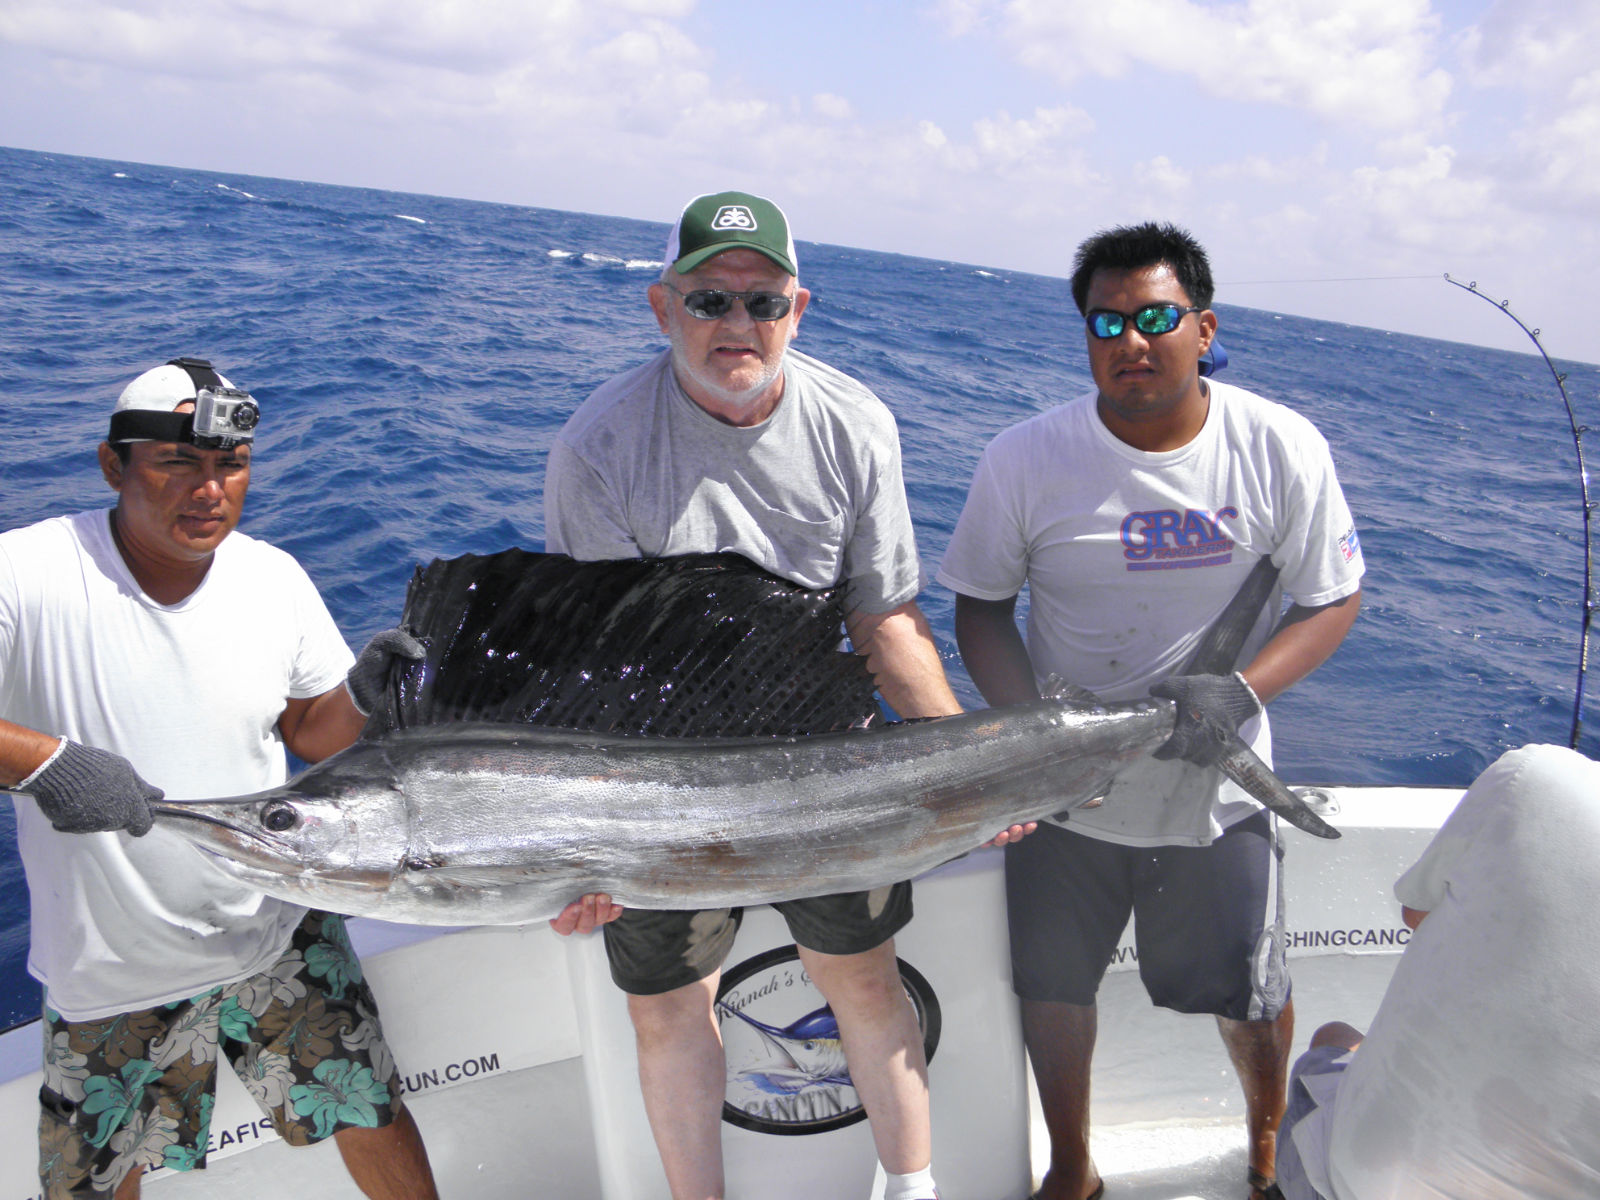 Riviera maya sportfishing deep sea fishing riviera maya for Deep sea fishing mexico